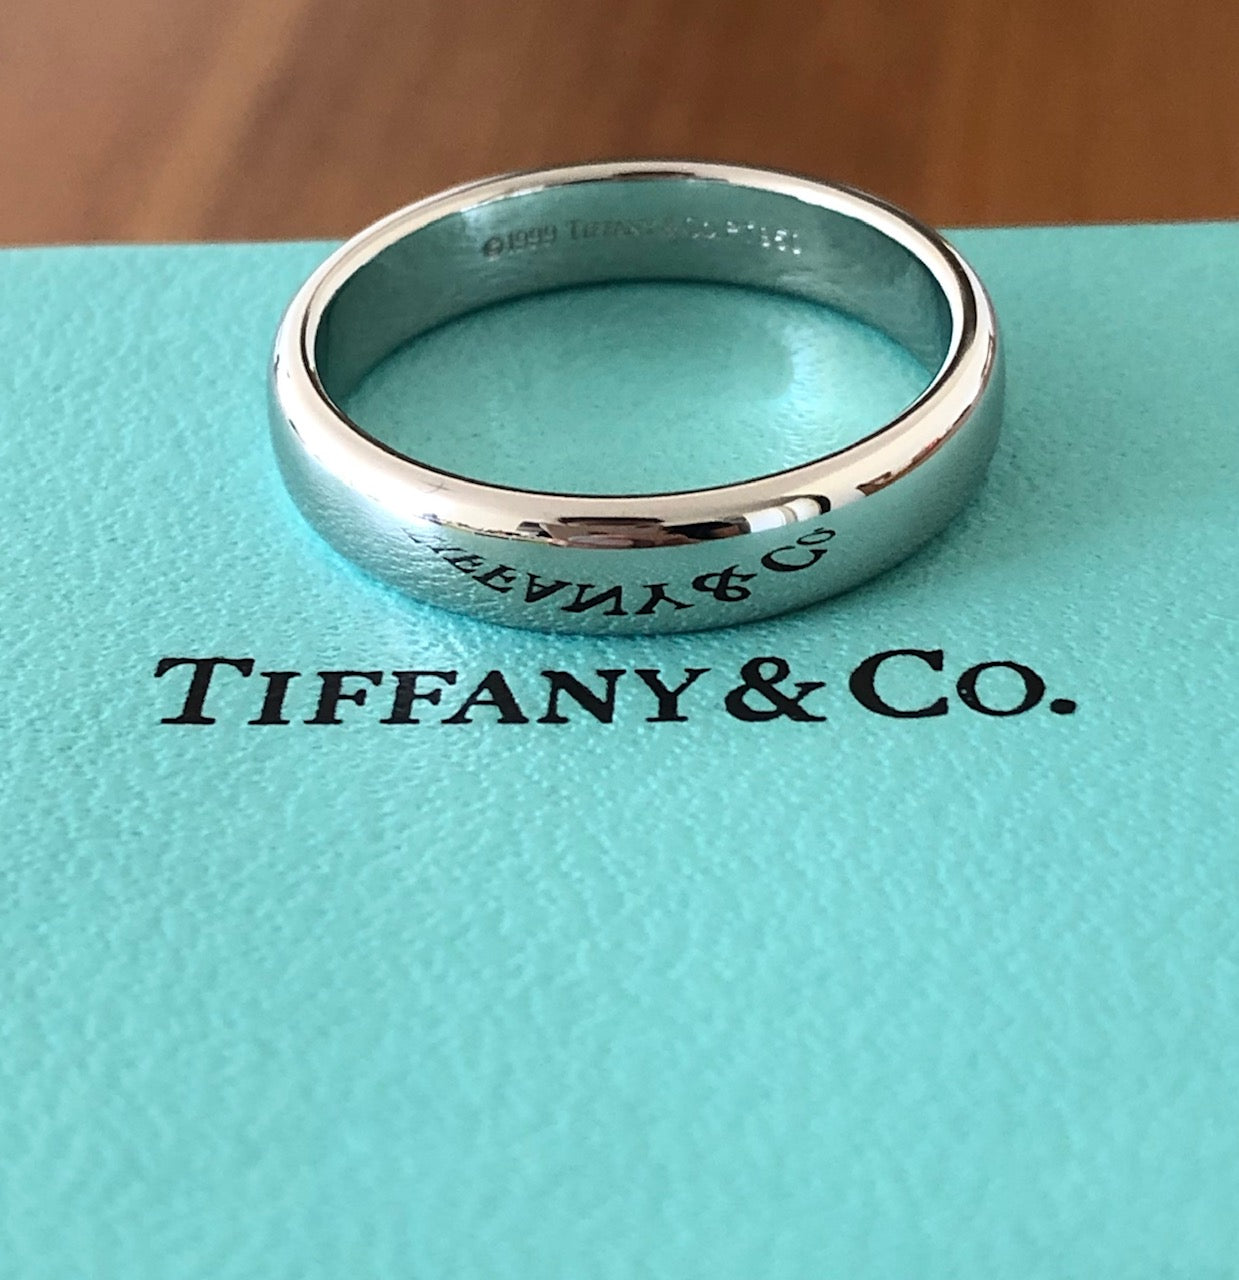 Tiffany & Co. 4.5mm Wedding Band Platinum Size 9.5